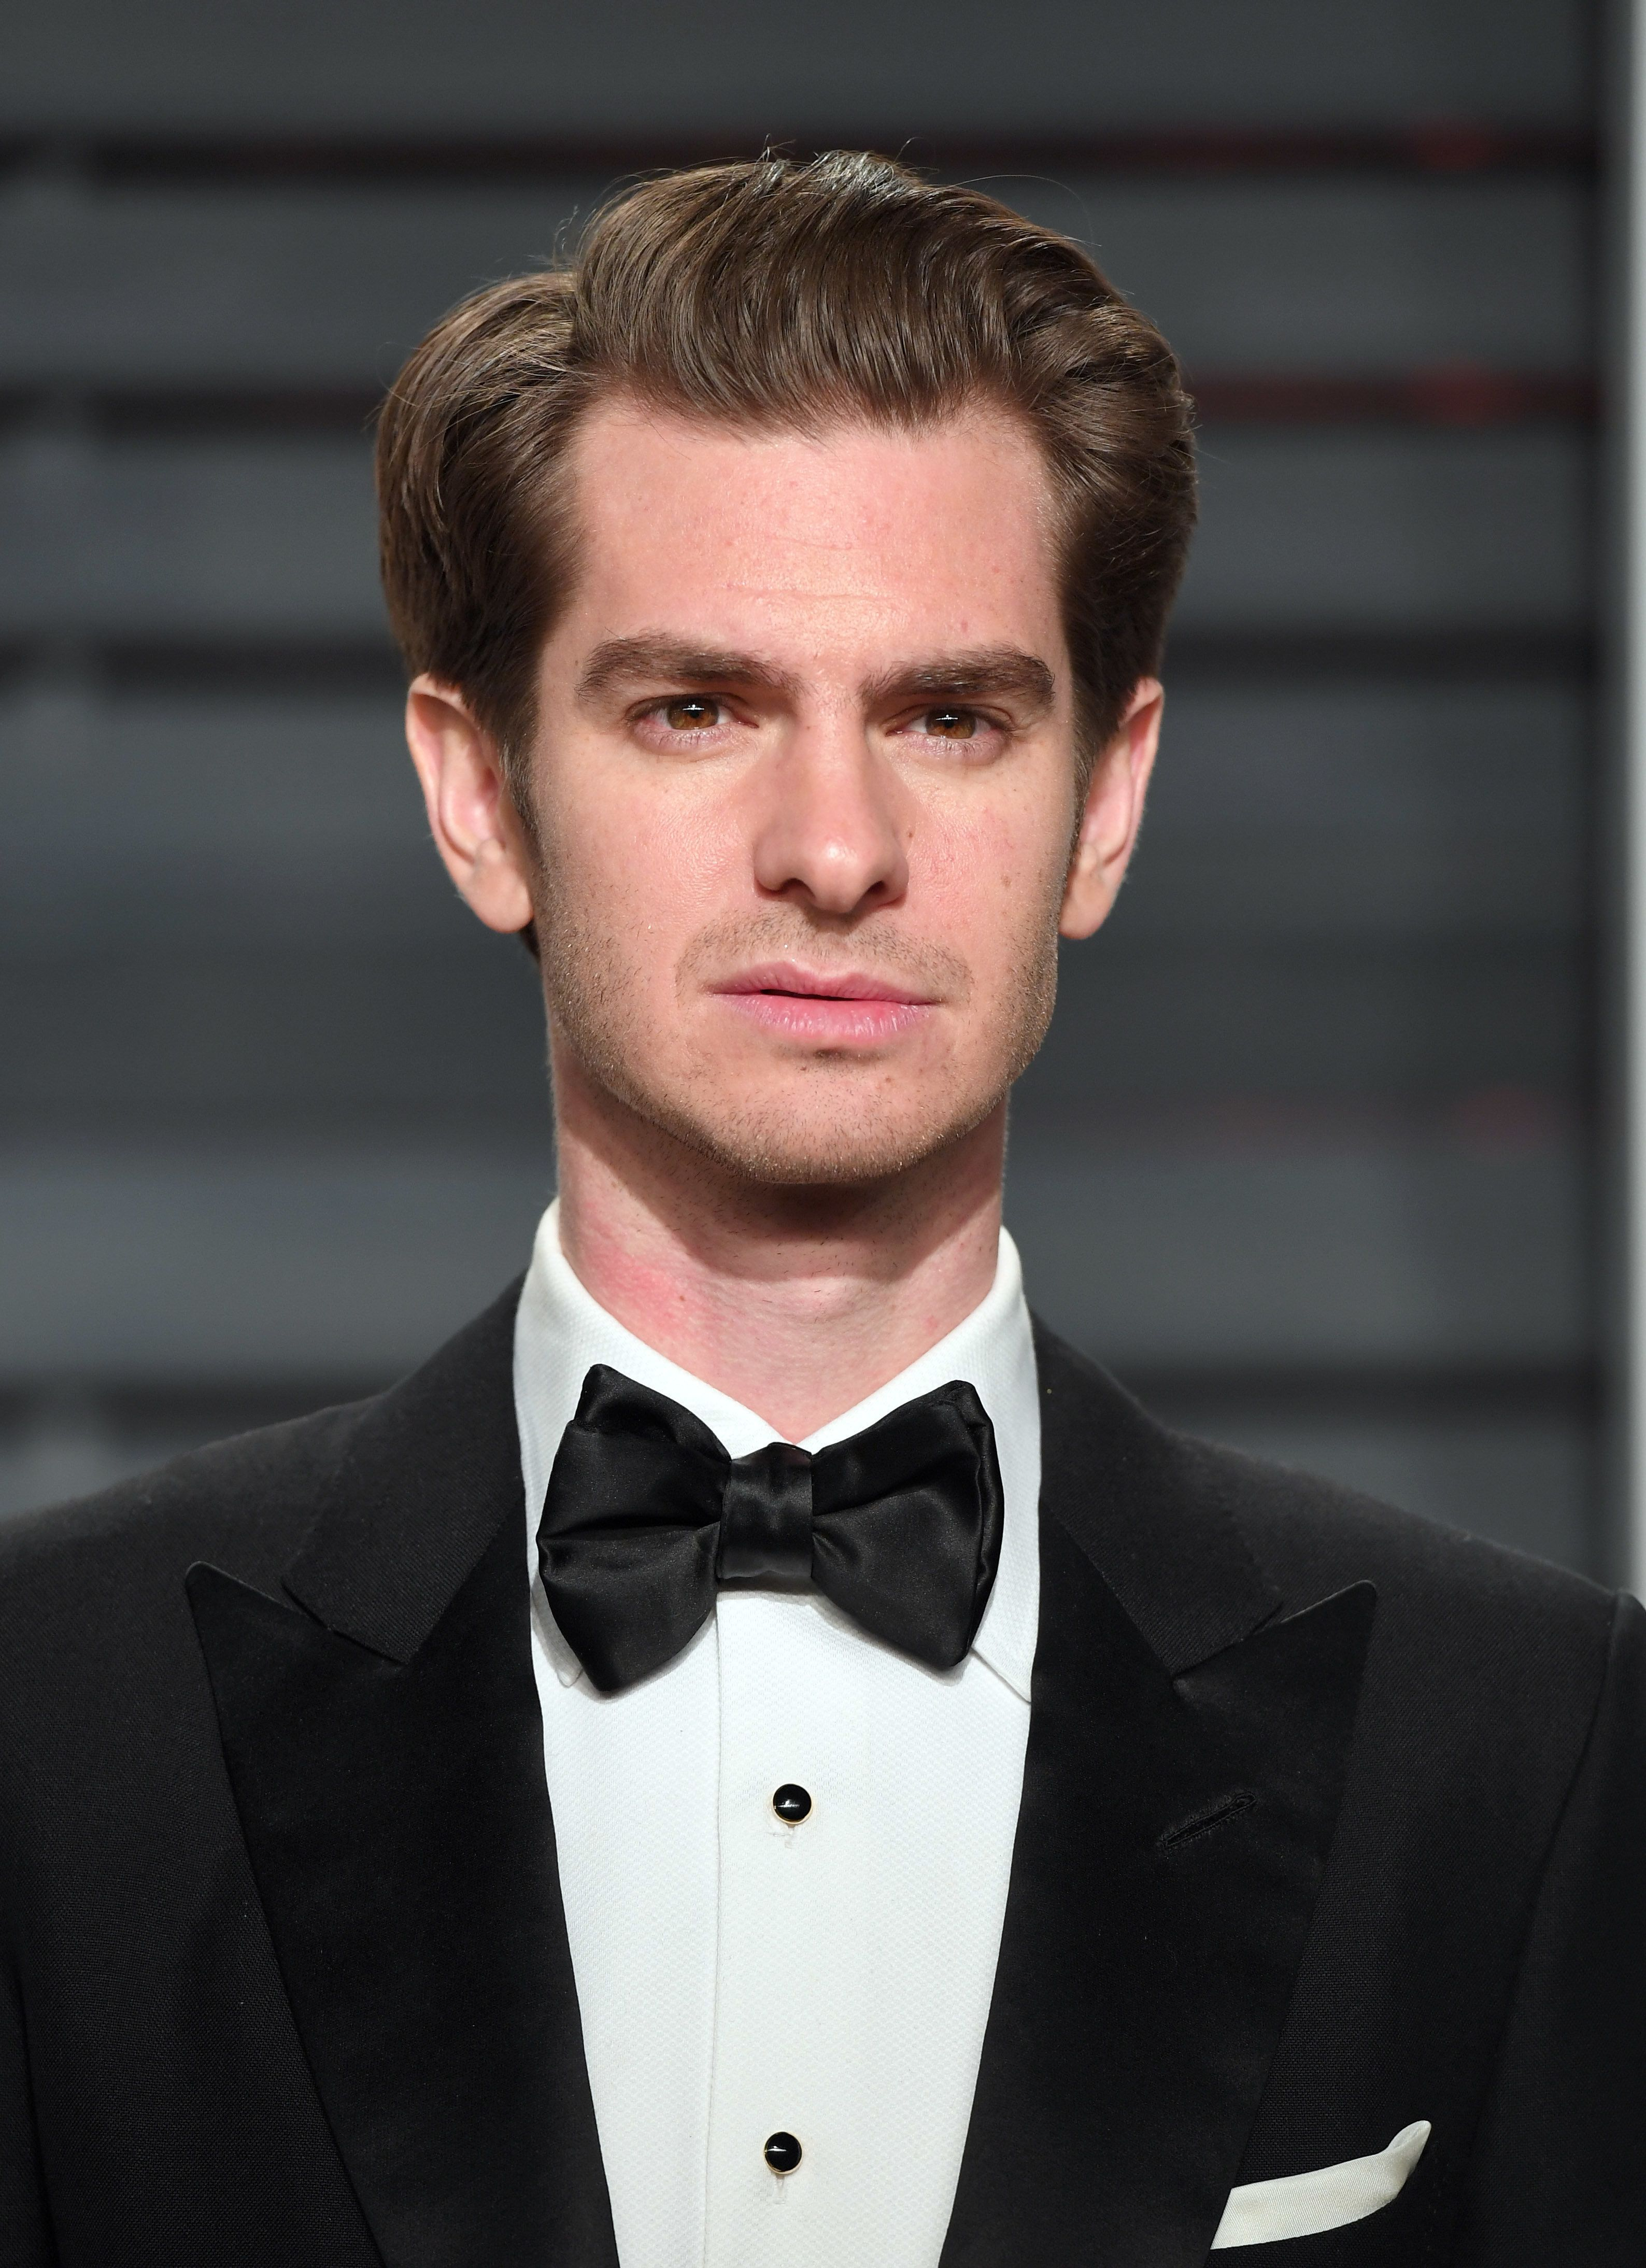 BEVERLY HILLS, CA - FEBRUARY 26:  Andrew Garfield arrives for the Vanity Fair Oscar Party hosted by Graydon Carter at the Wallis Annenberg Center for the Performing Arts on February 26, 2017 in Beverly Hills, California.  (Photo by Karwai Tang/Getty Images)